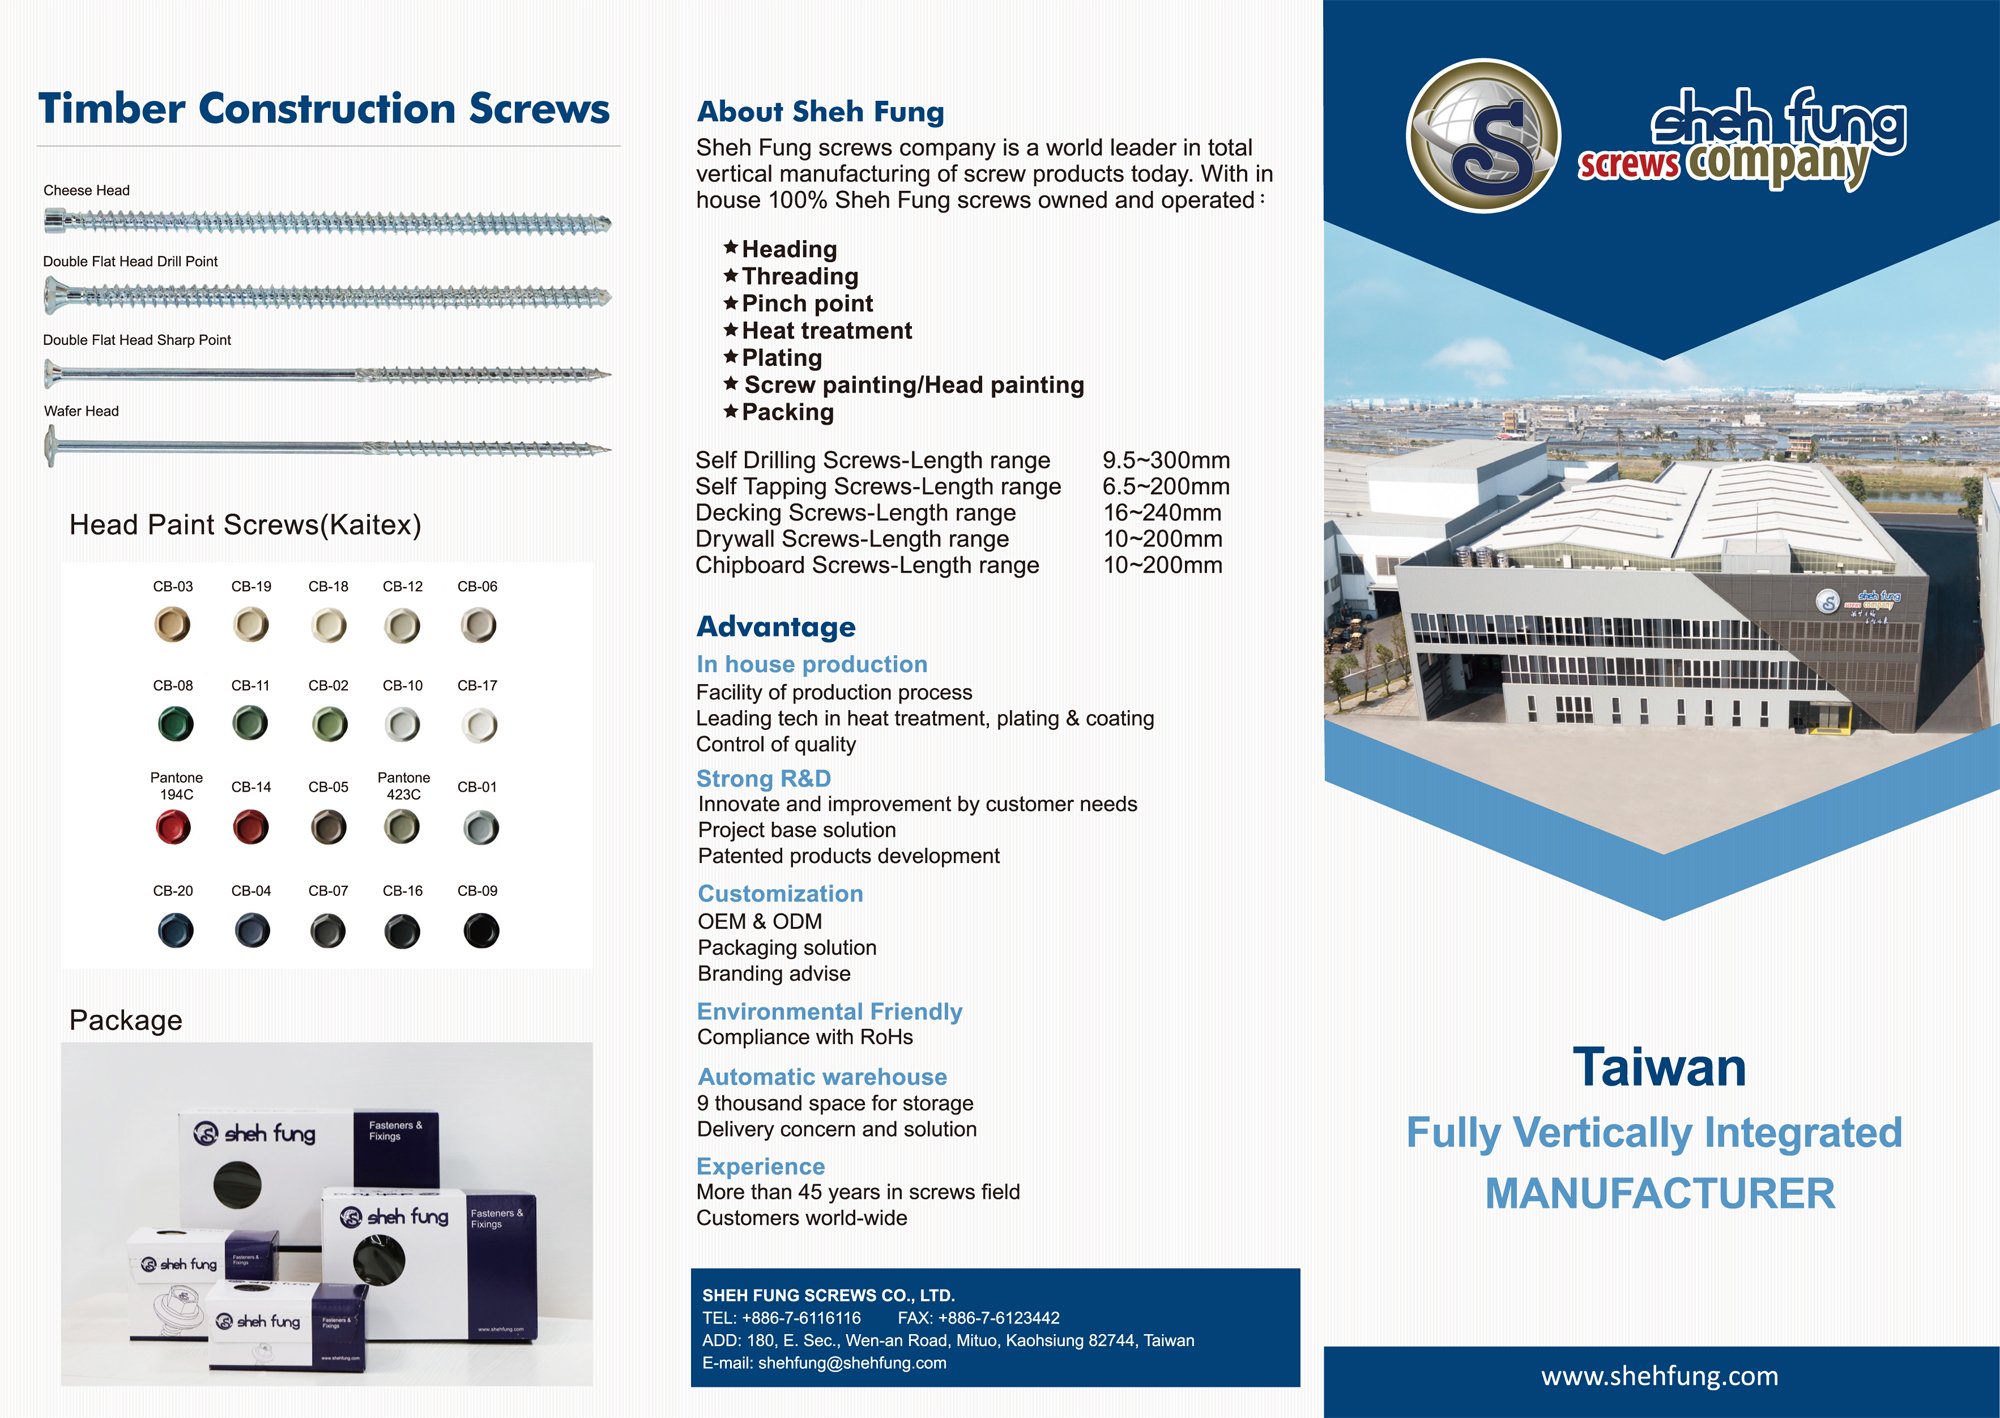 SHEH FUNG SCREWS CO., LTD.  Online Catalogues